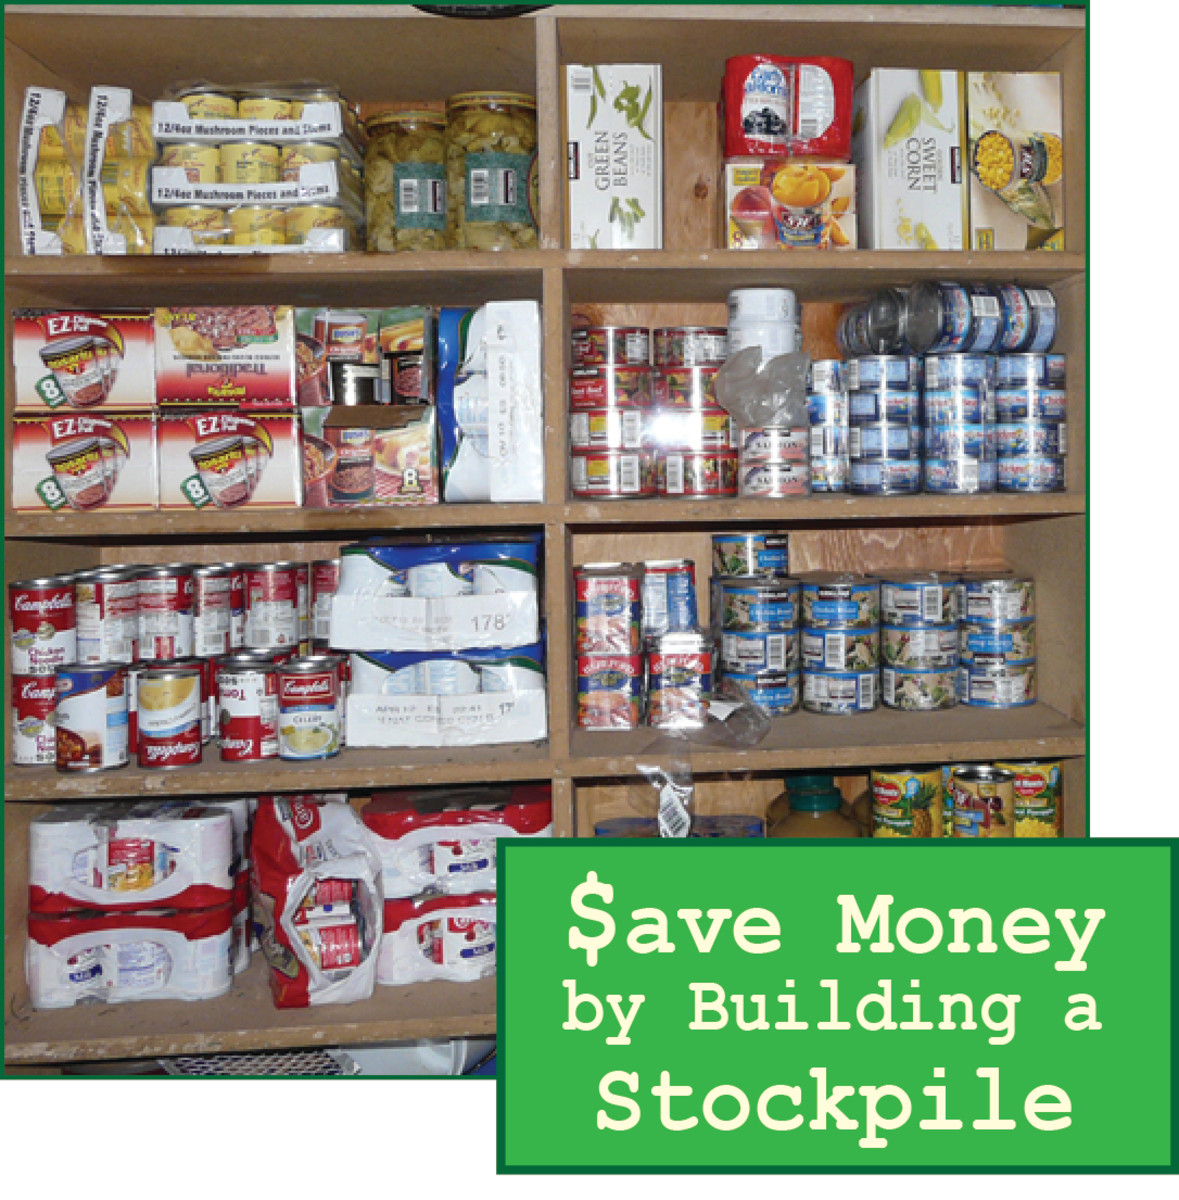 Frugal Living - Stockpiling to Save Money